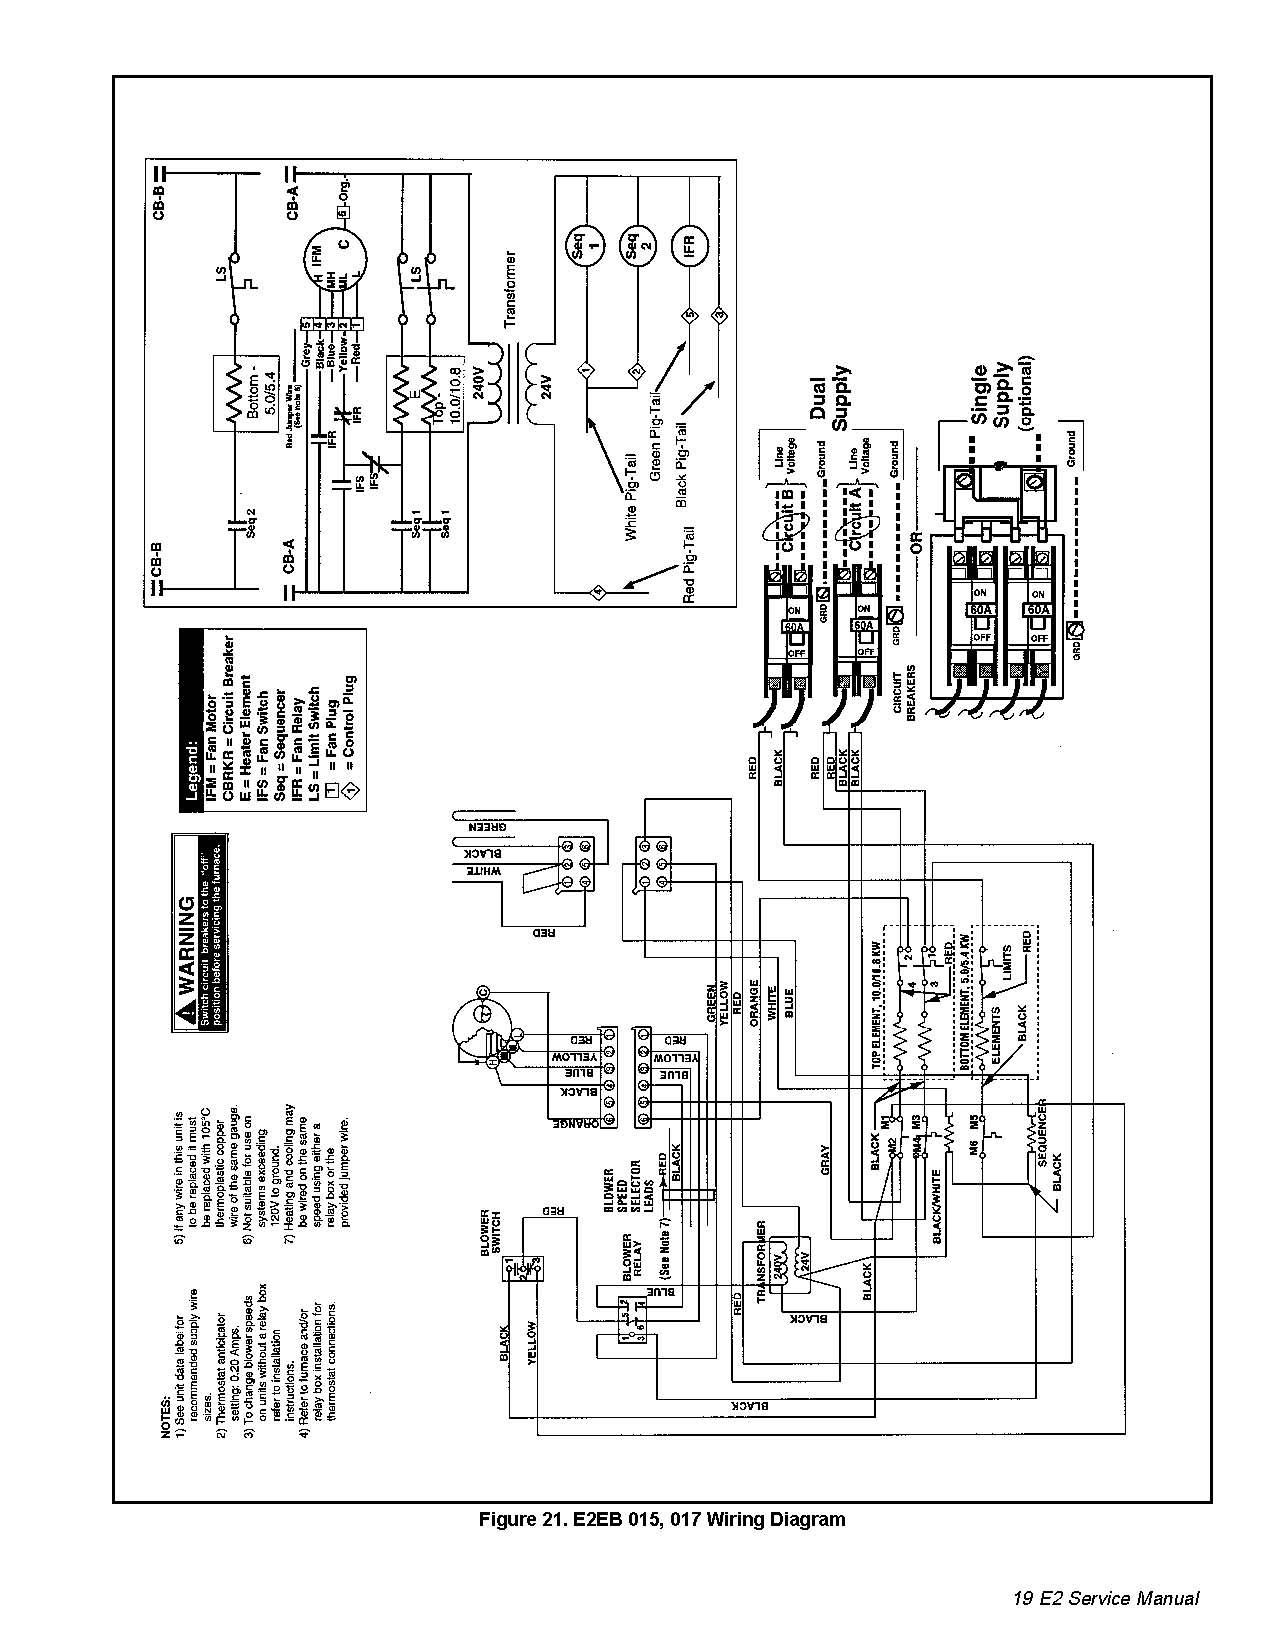 Need Wiring Diagram For Furnace Blower Model E2eh 015ha With Diagrams